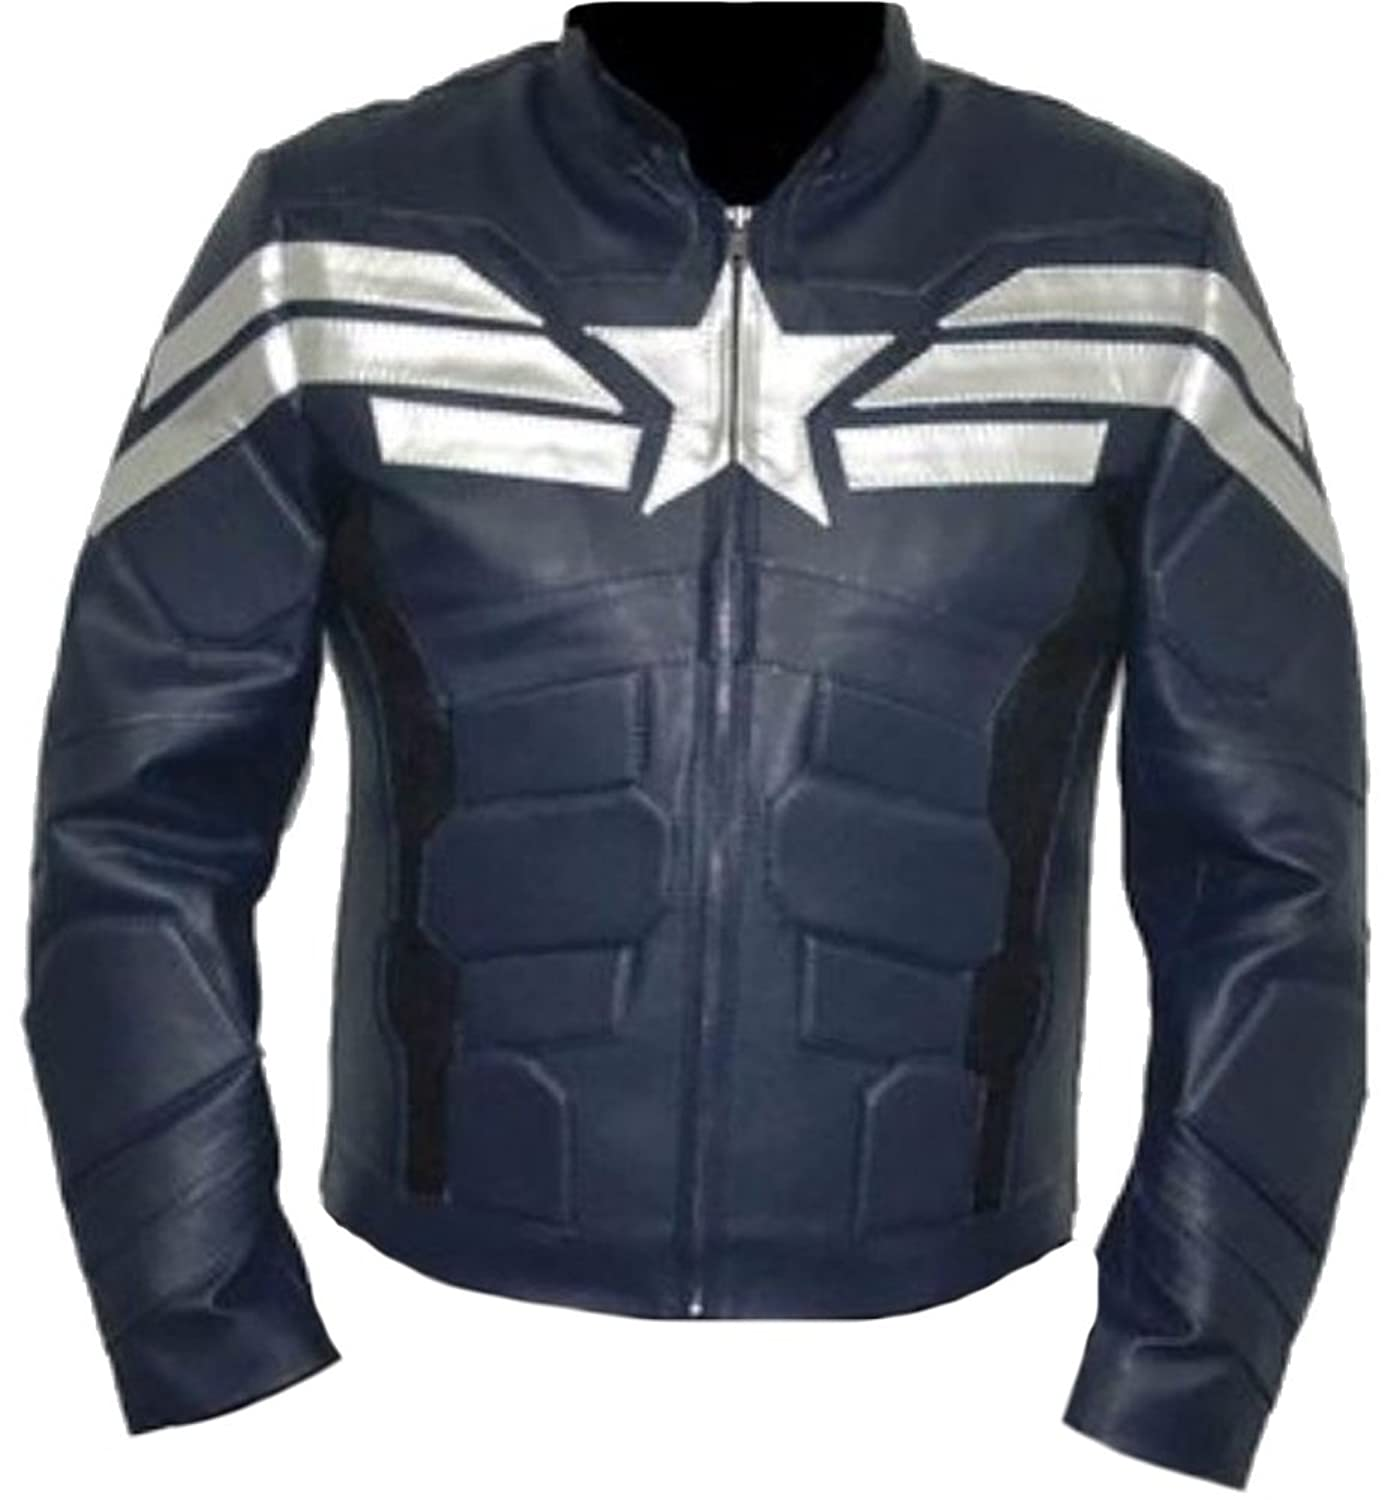 Classyak Men's America Fashion Real Leather Captain Top Quality Jacket